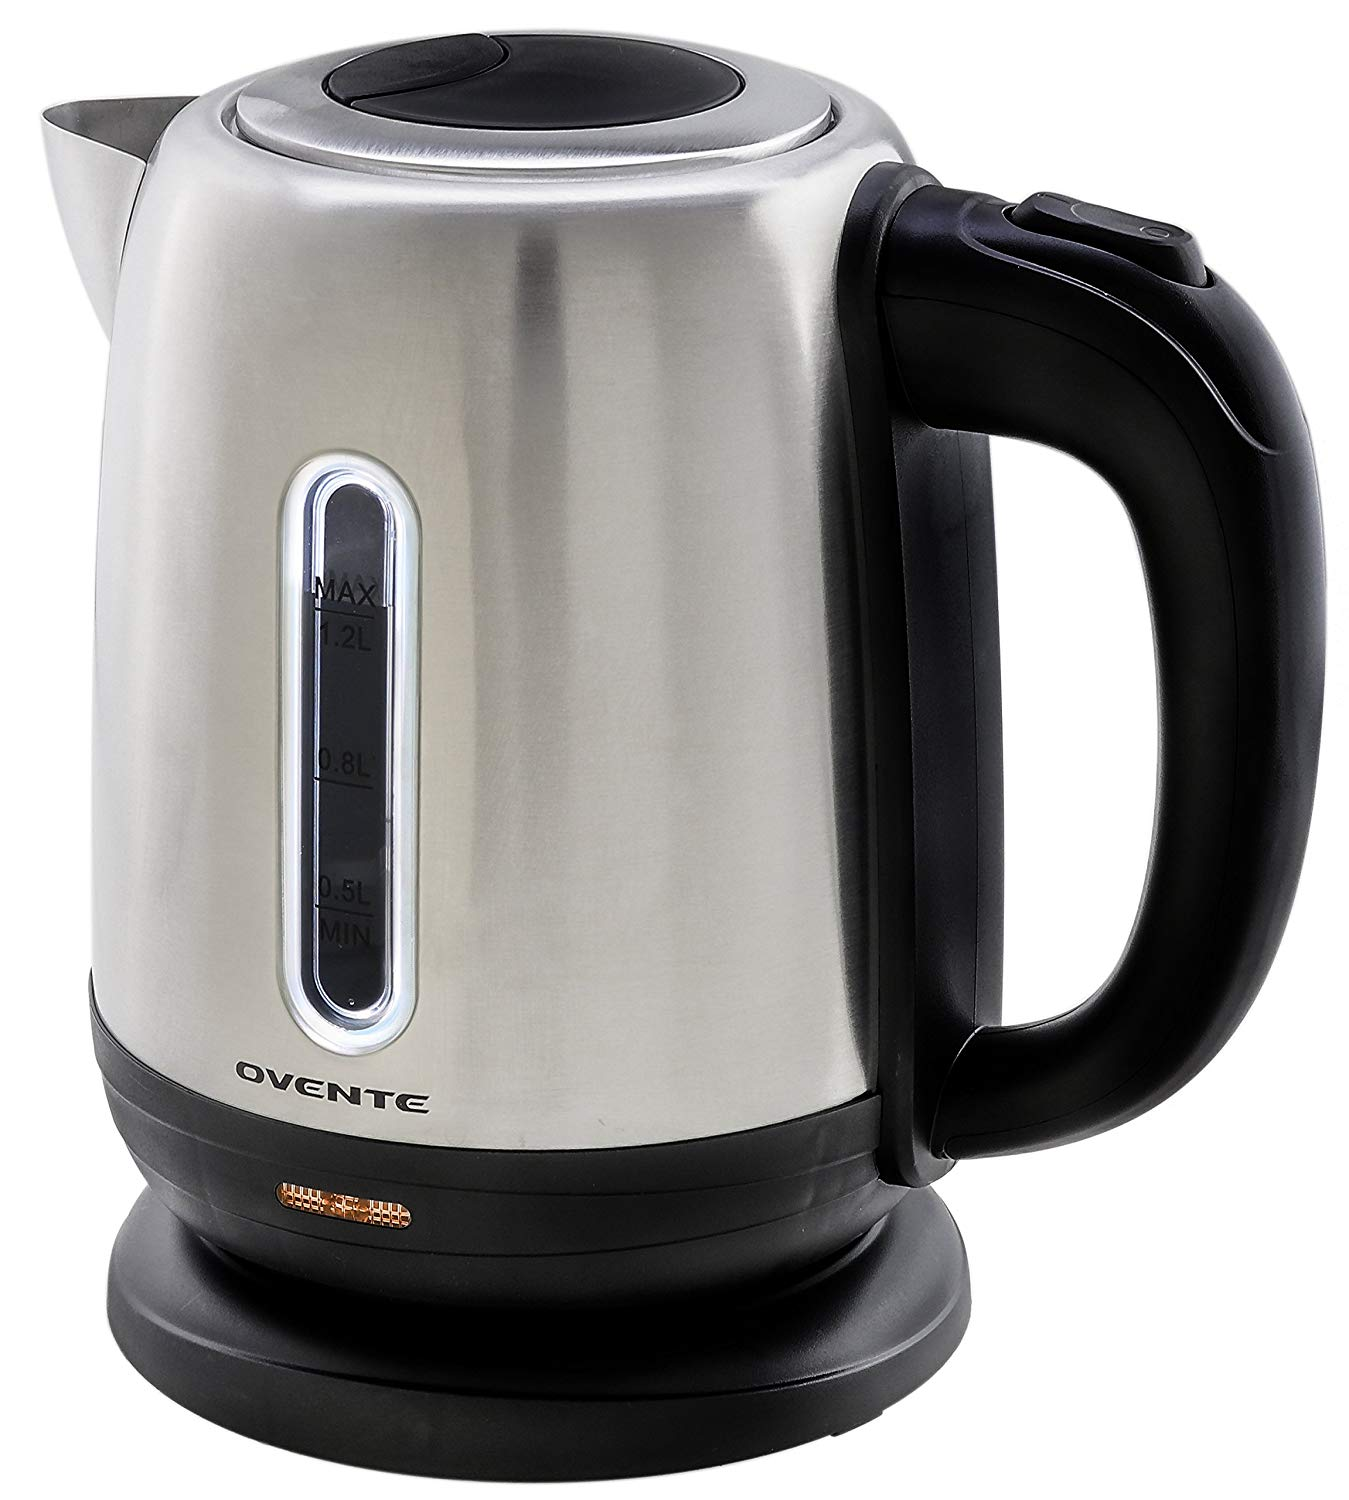 Ovente Stainless Steel Electric Tea Kettle Cordless with Concealed Heating Element, Auto Shut Off and Boil-Dry Protection, Small 1.2 Liter, Brushed (KS22S)